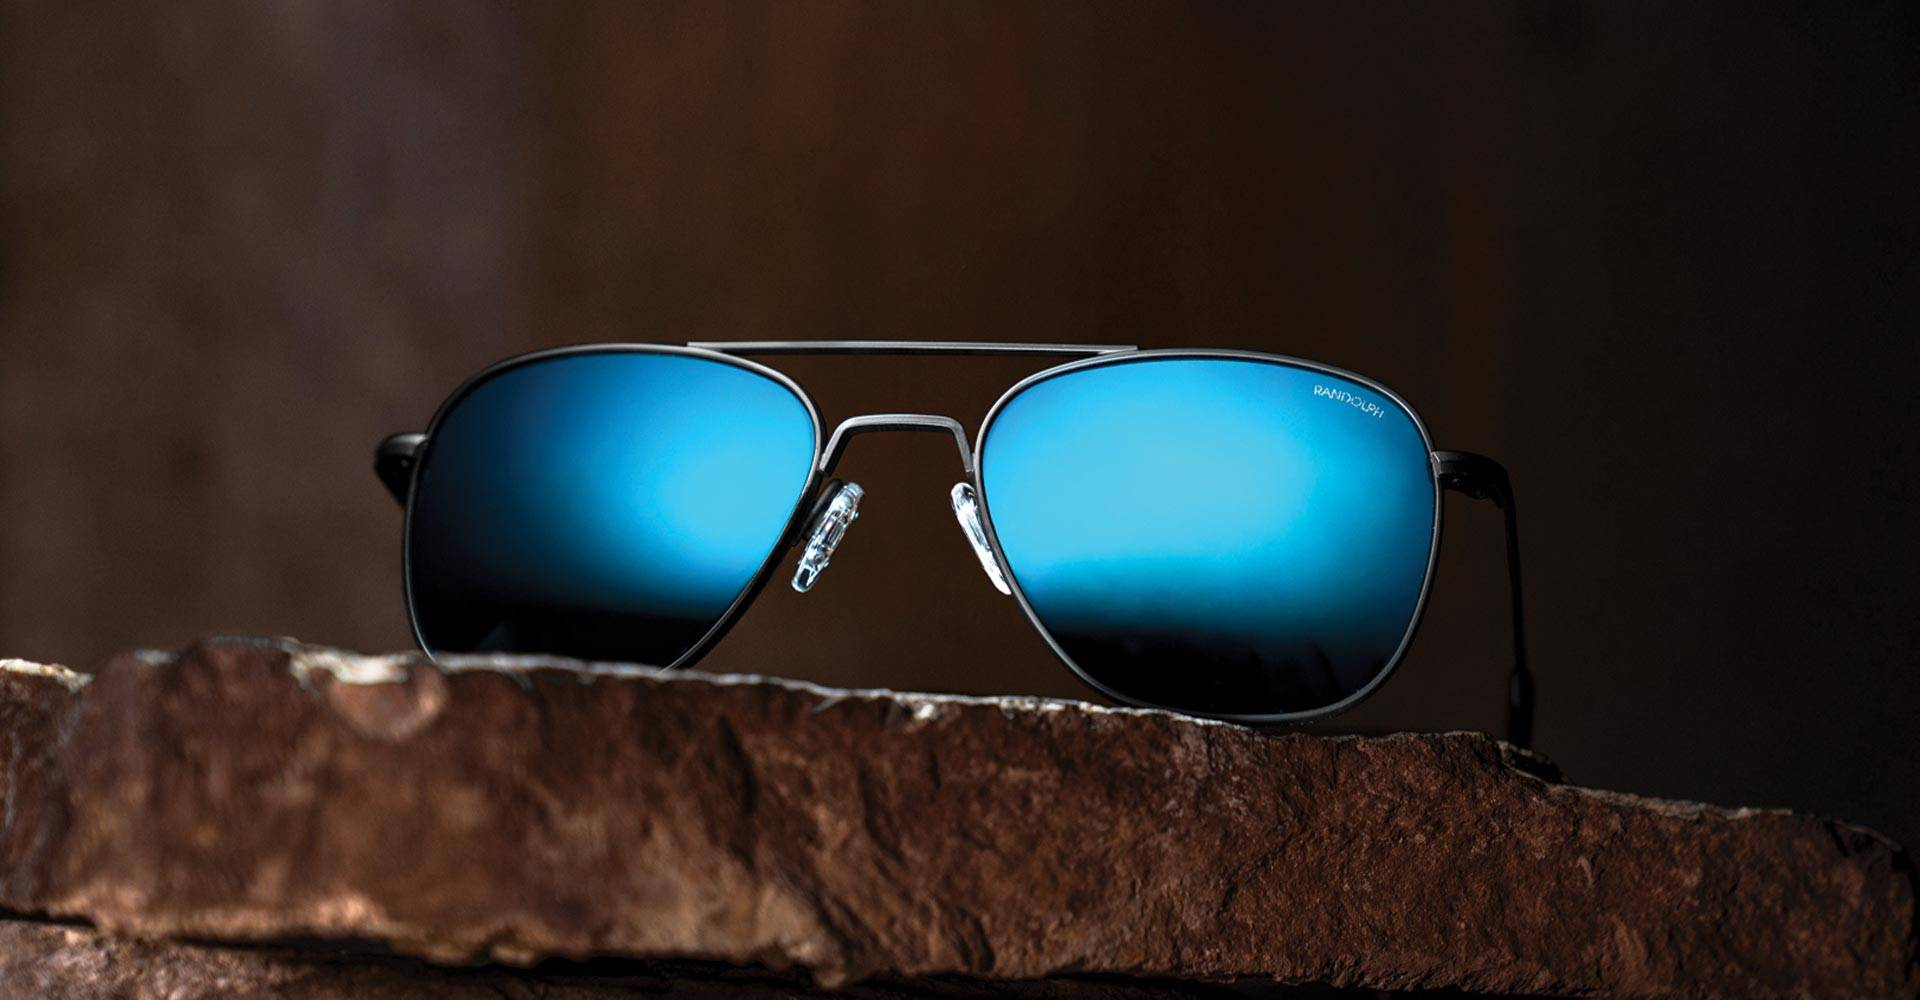 NEW SkyTec Cobalt Blue Mirrored Lenses Pair with Matte Black Aviator sunglasses by Randolph USA